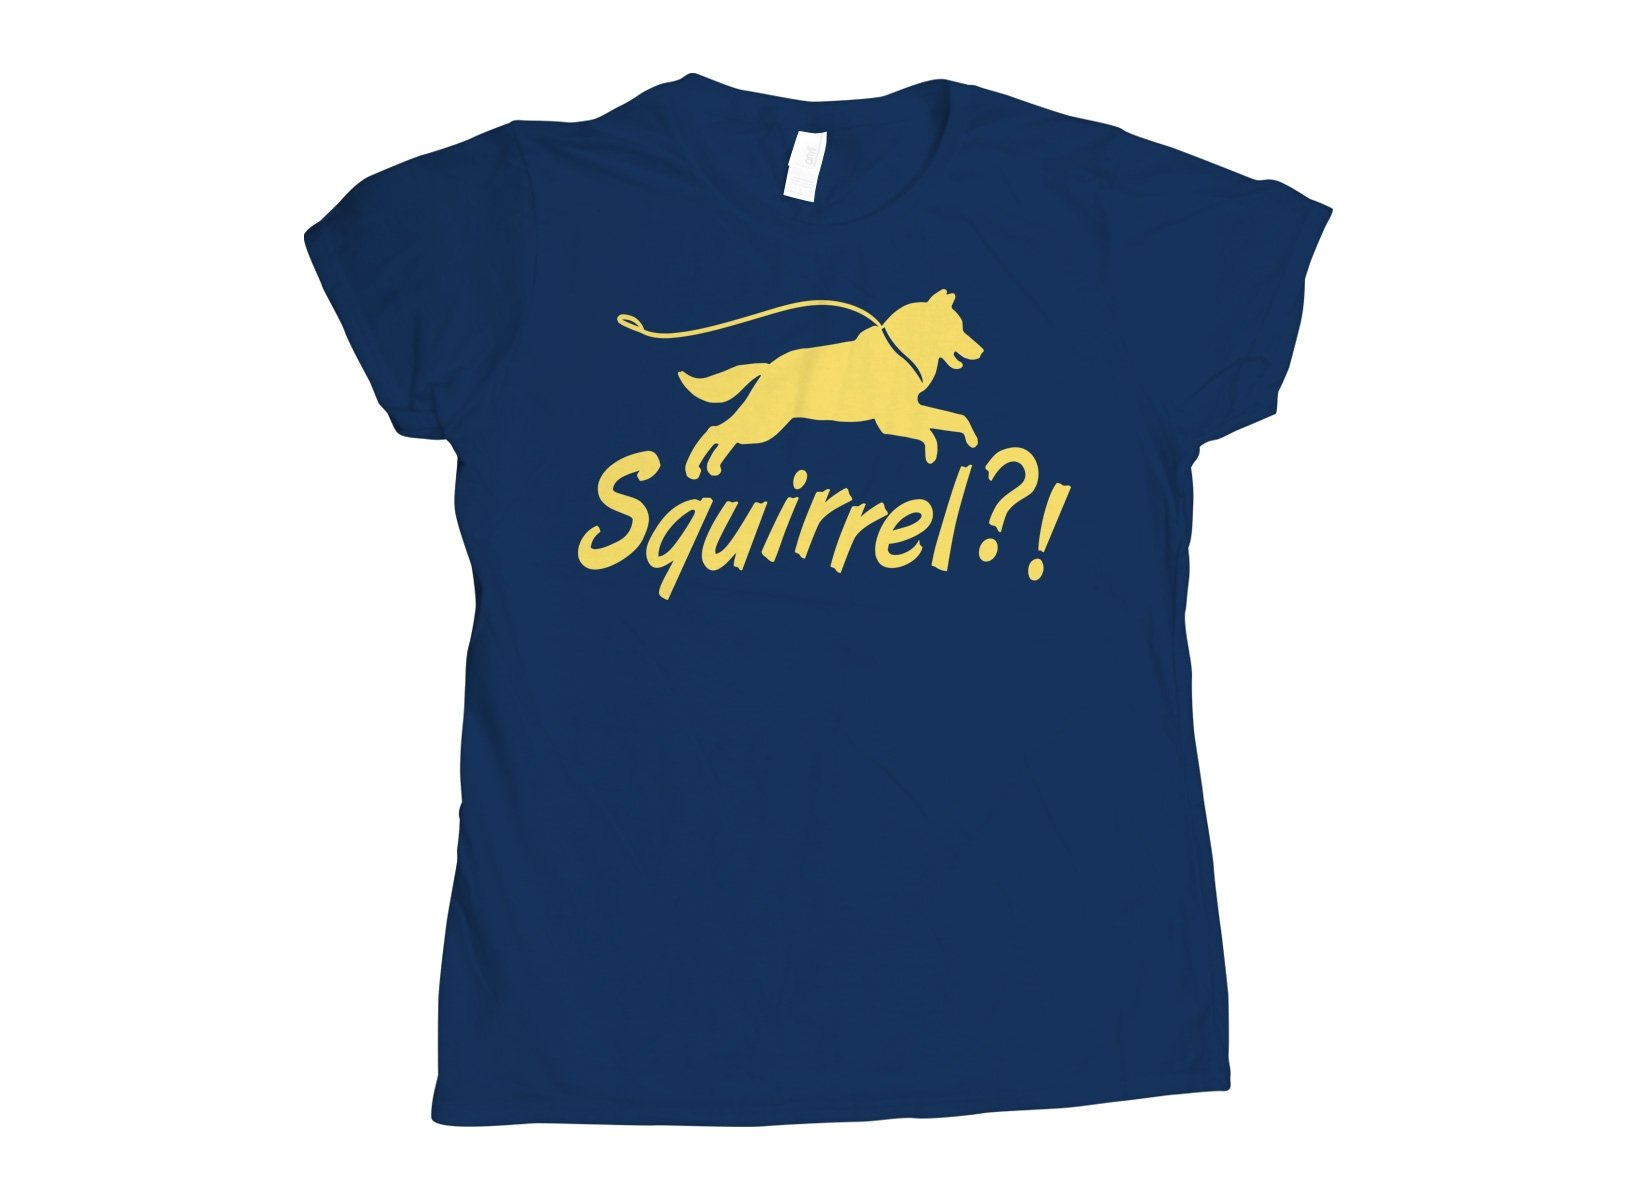 Squirrel?! on Womens T-Shirt